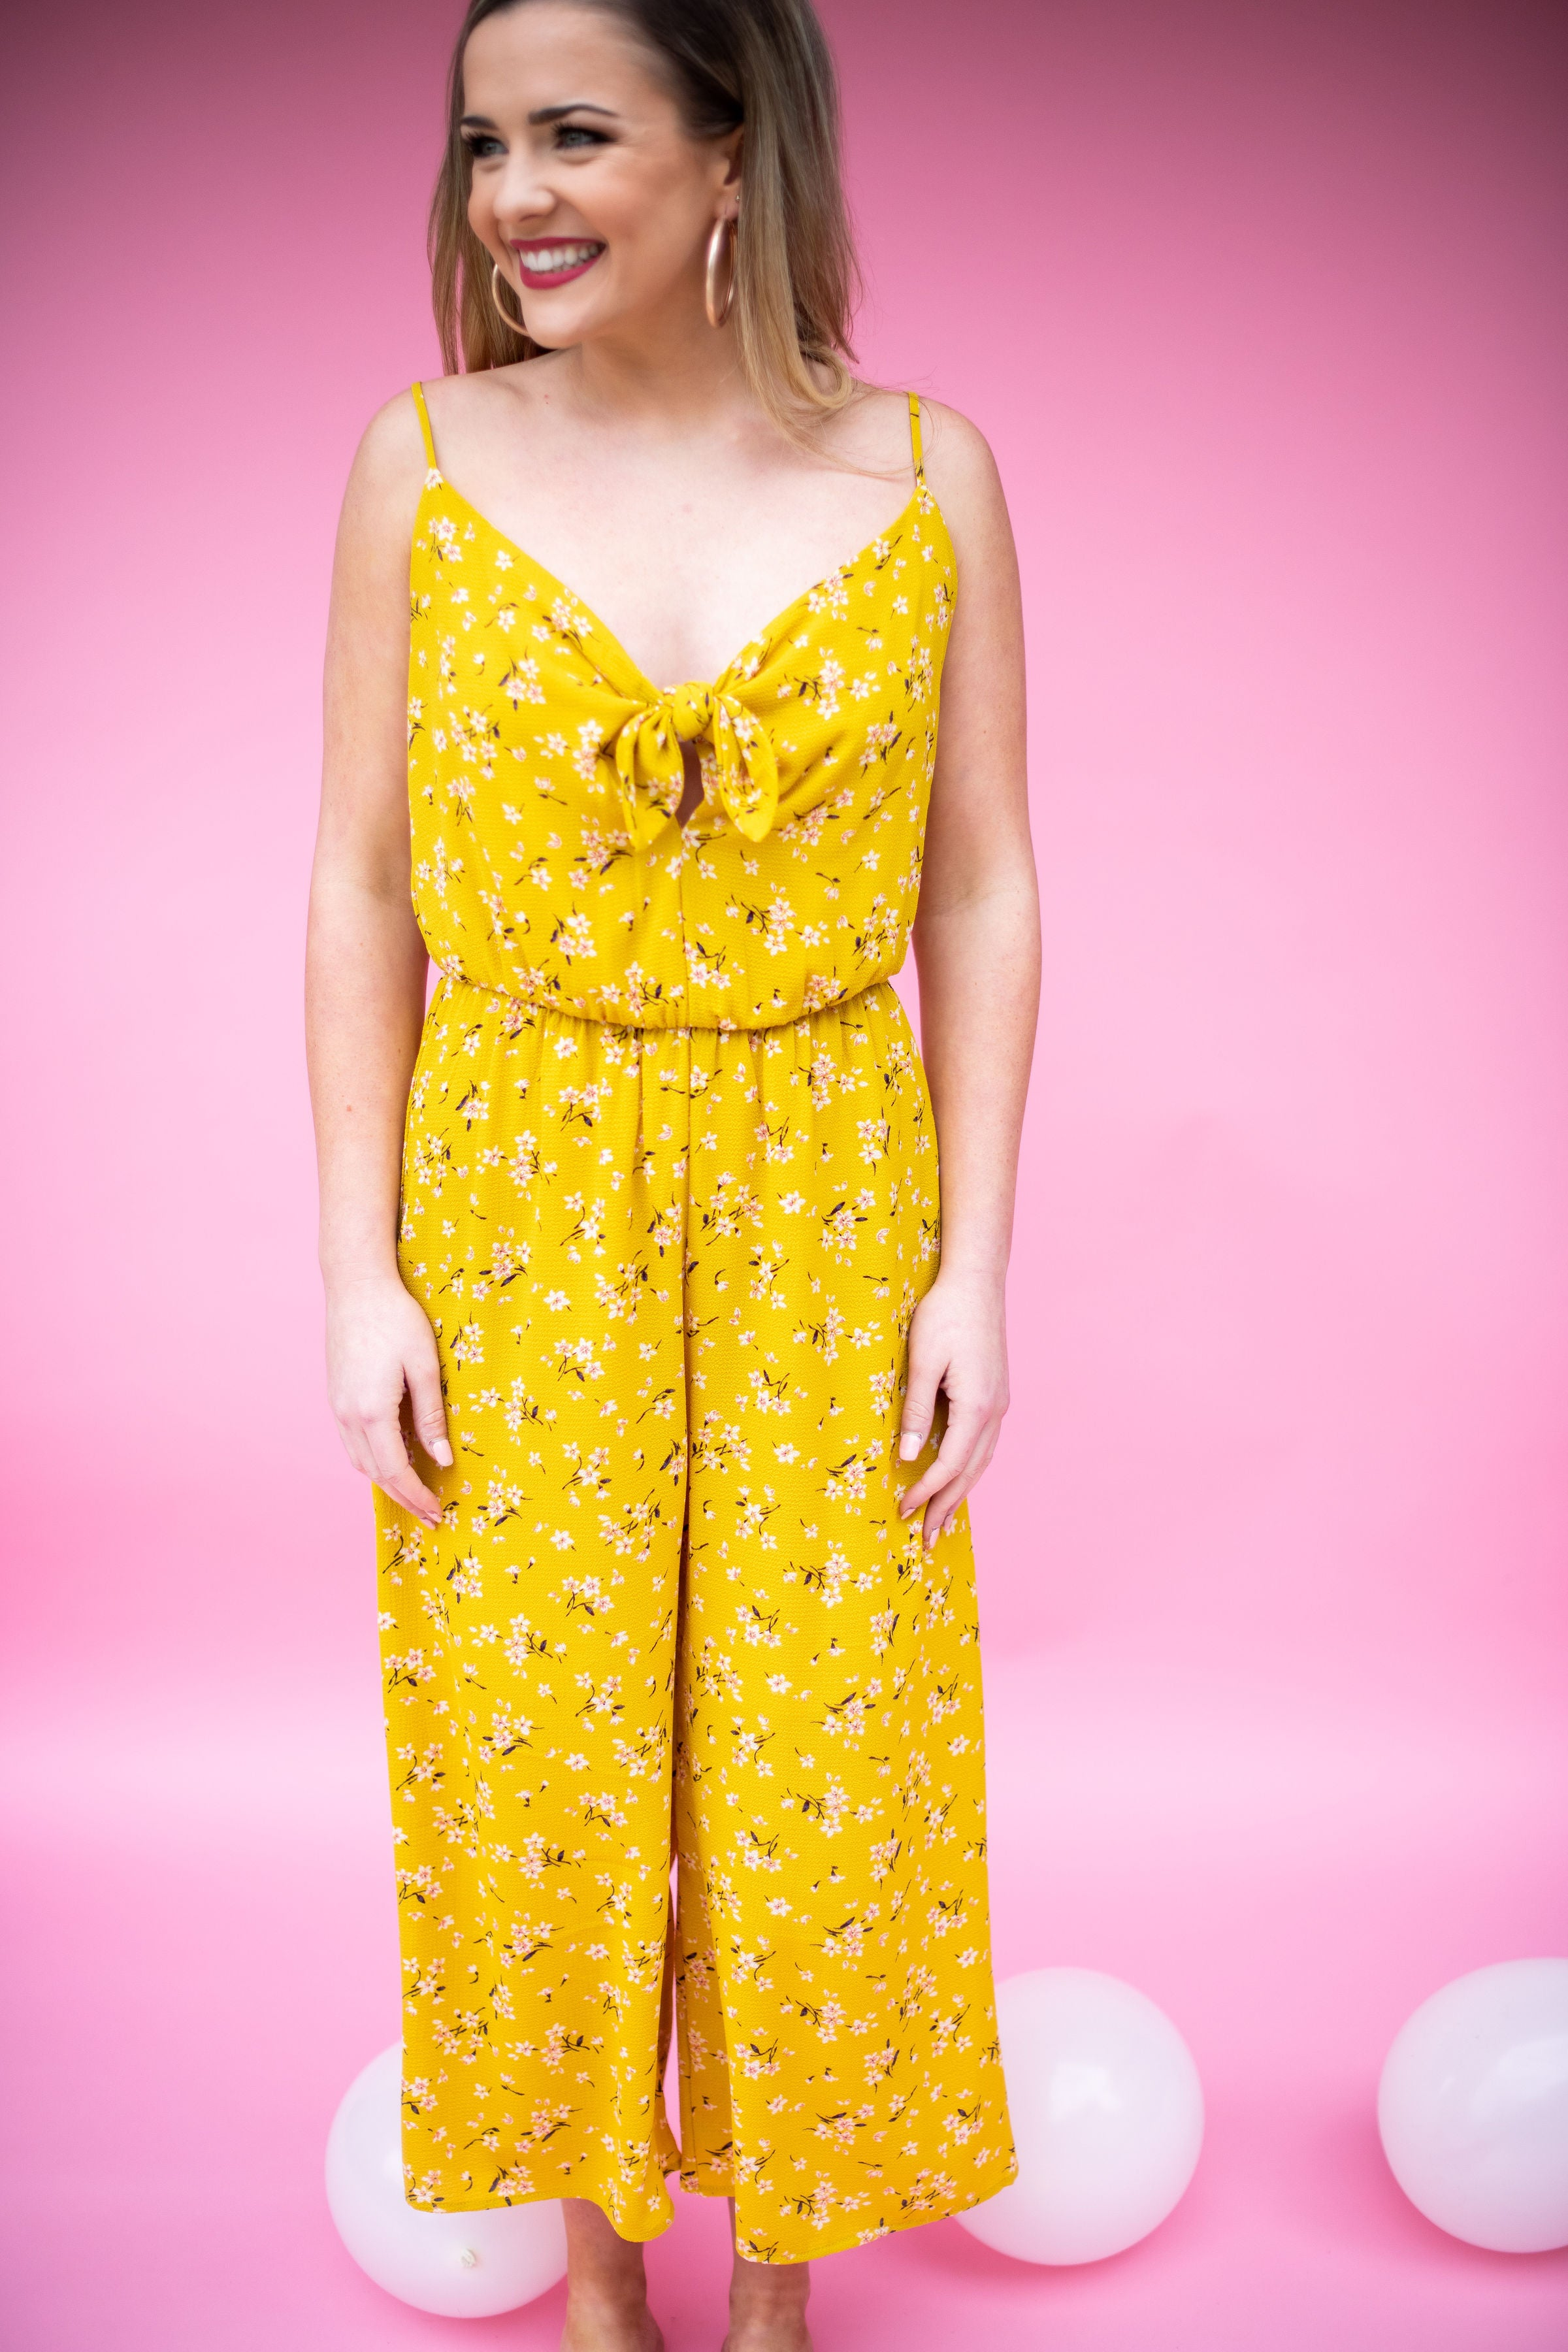 Brighter Than the Sun Printed Jumper with Front Tie:  Yellow